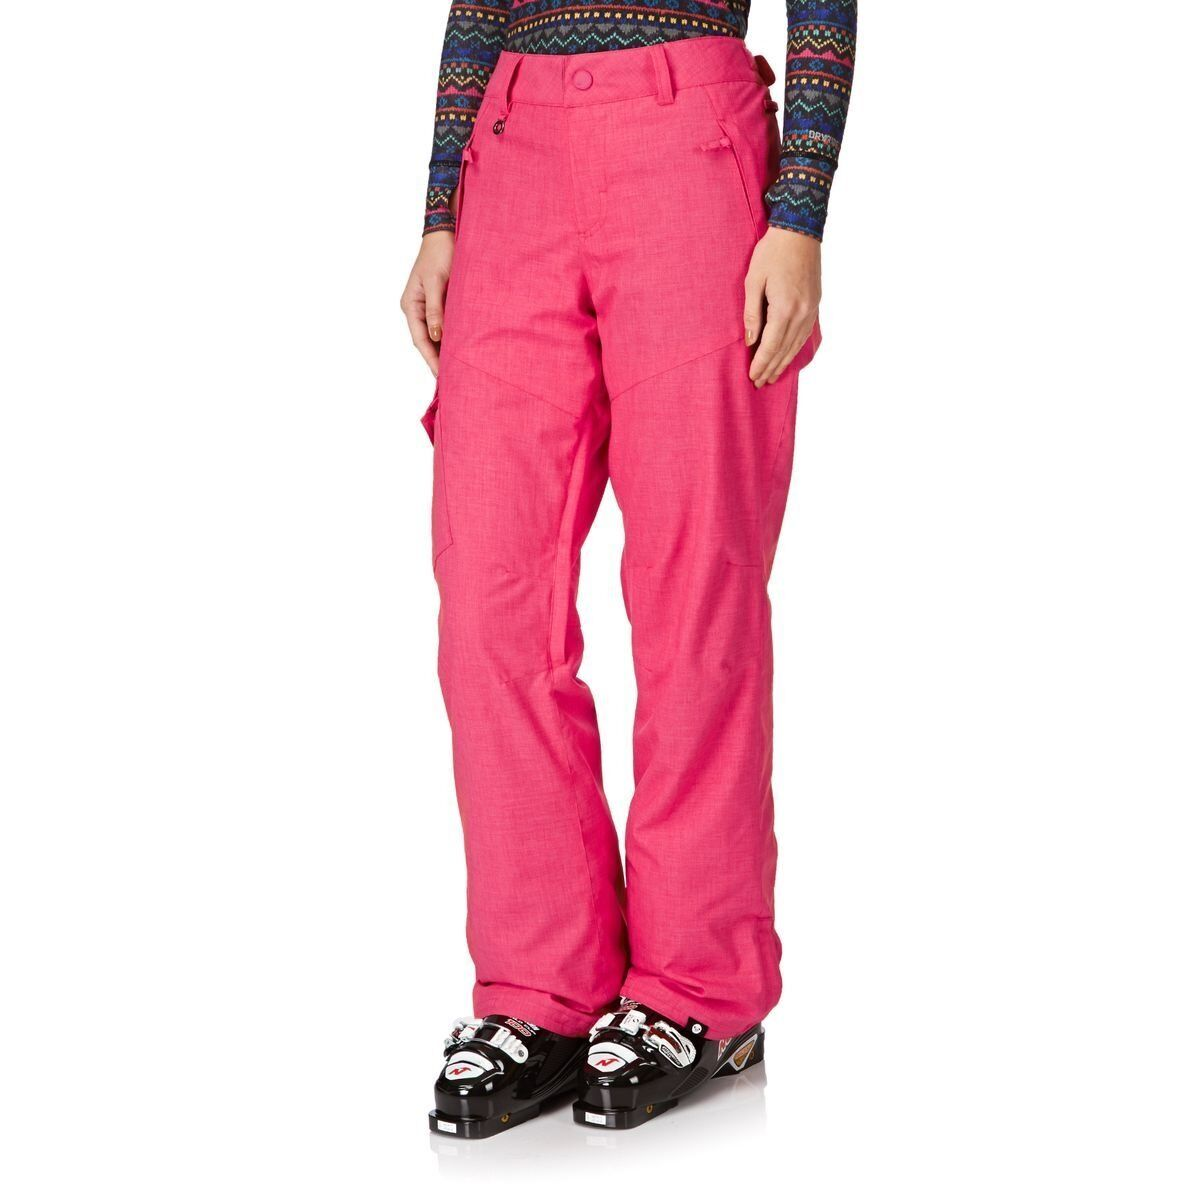 Roxy WOMENS tonic SNOW PANT - pink - brand new with tags RRP